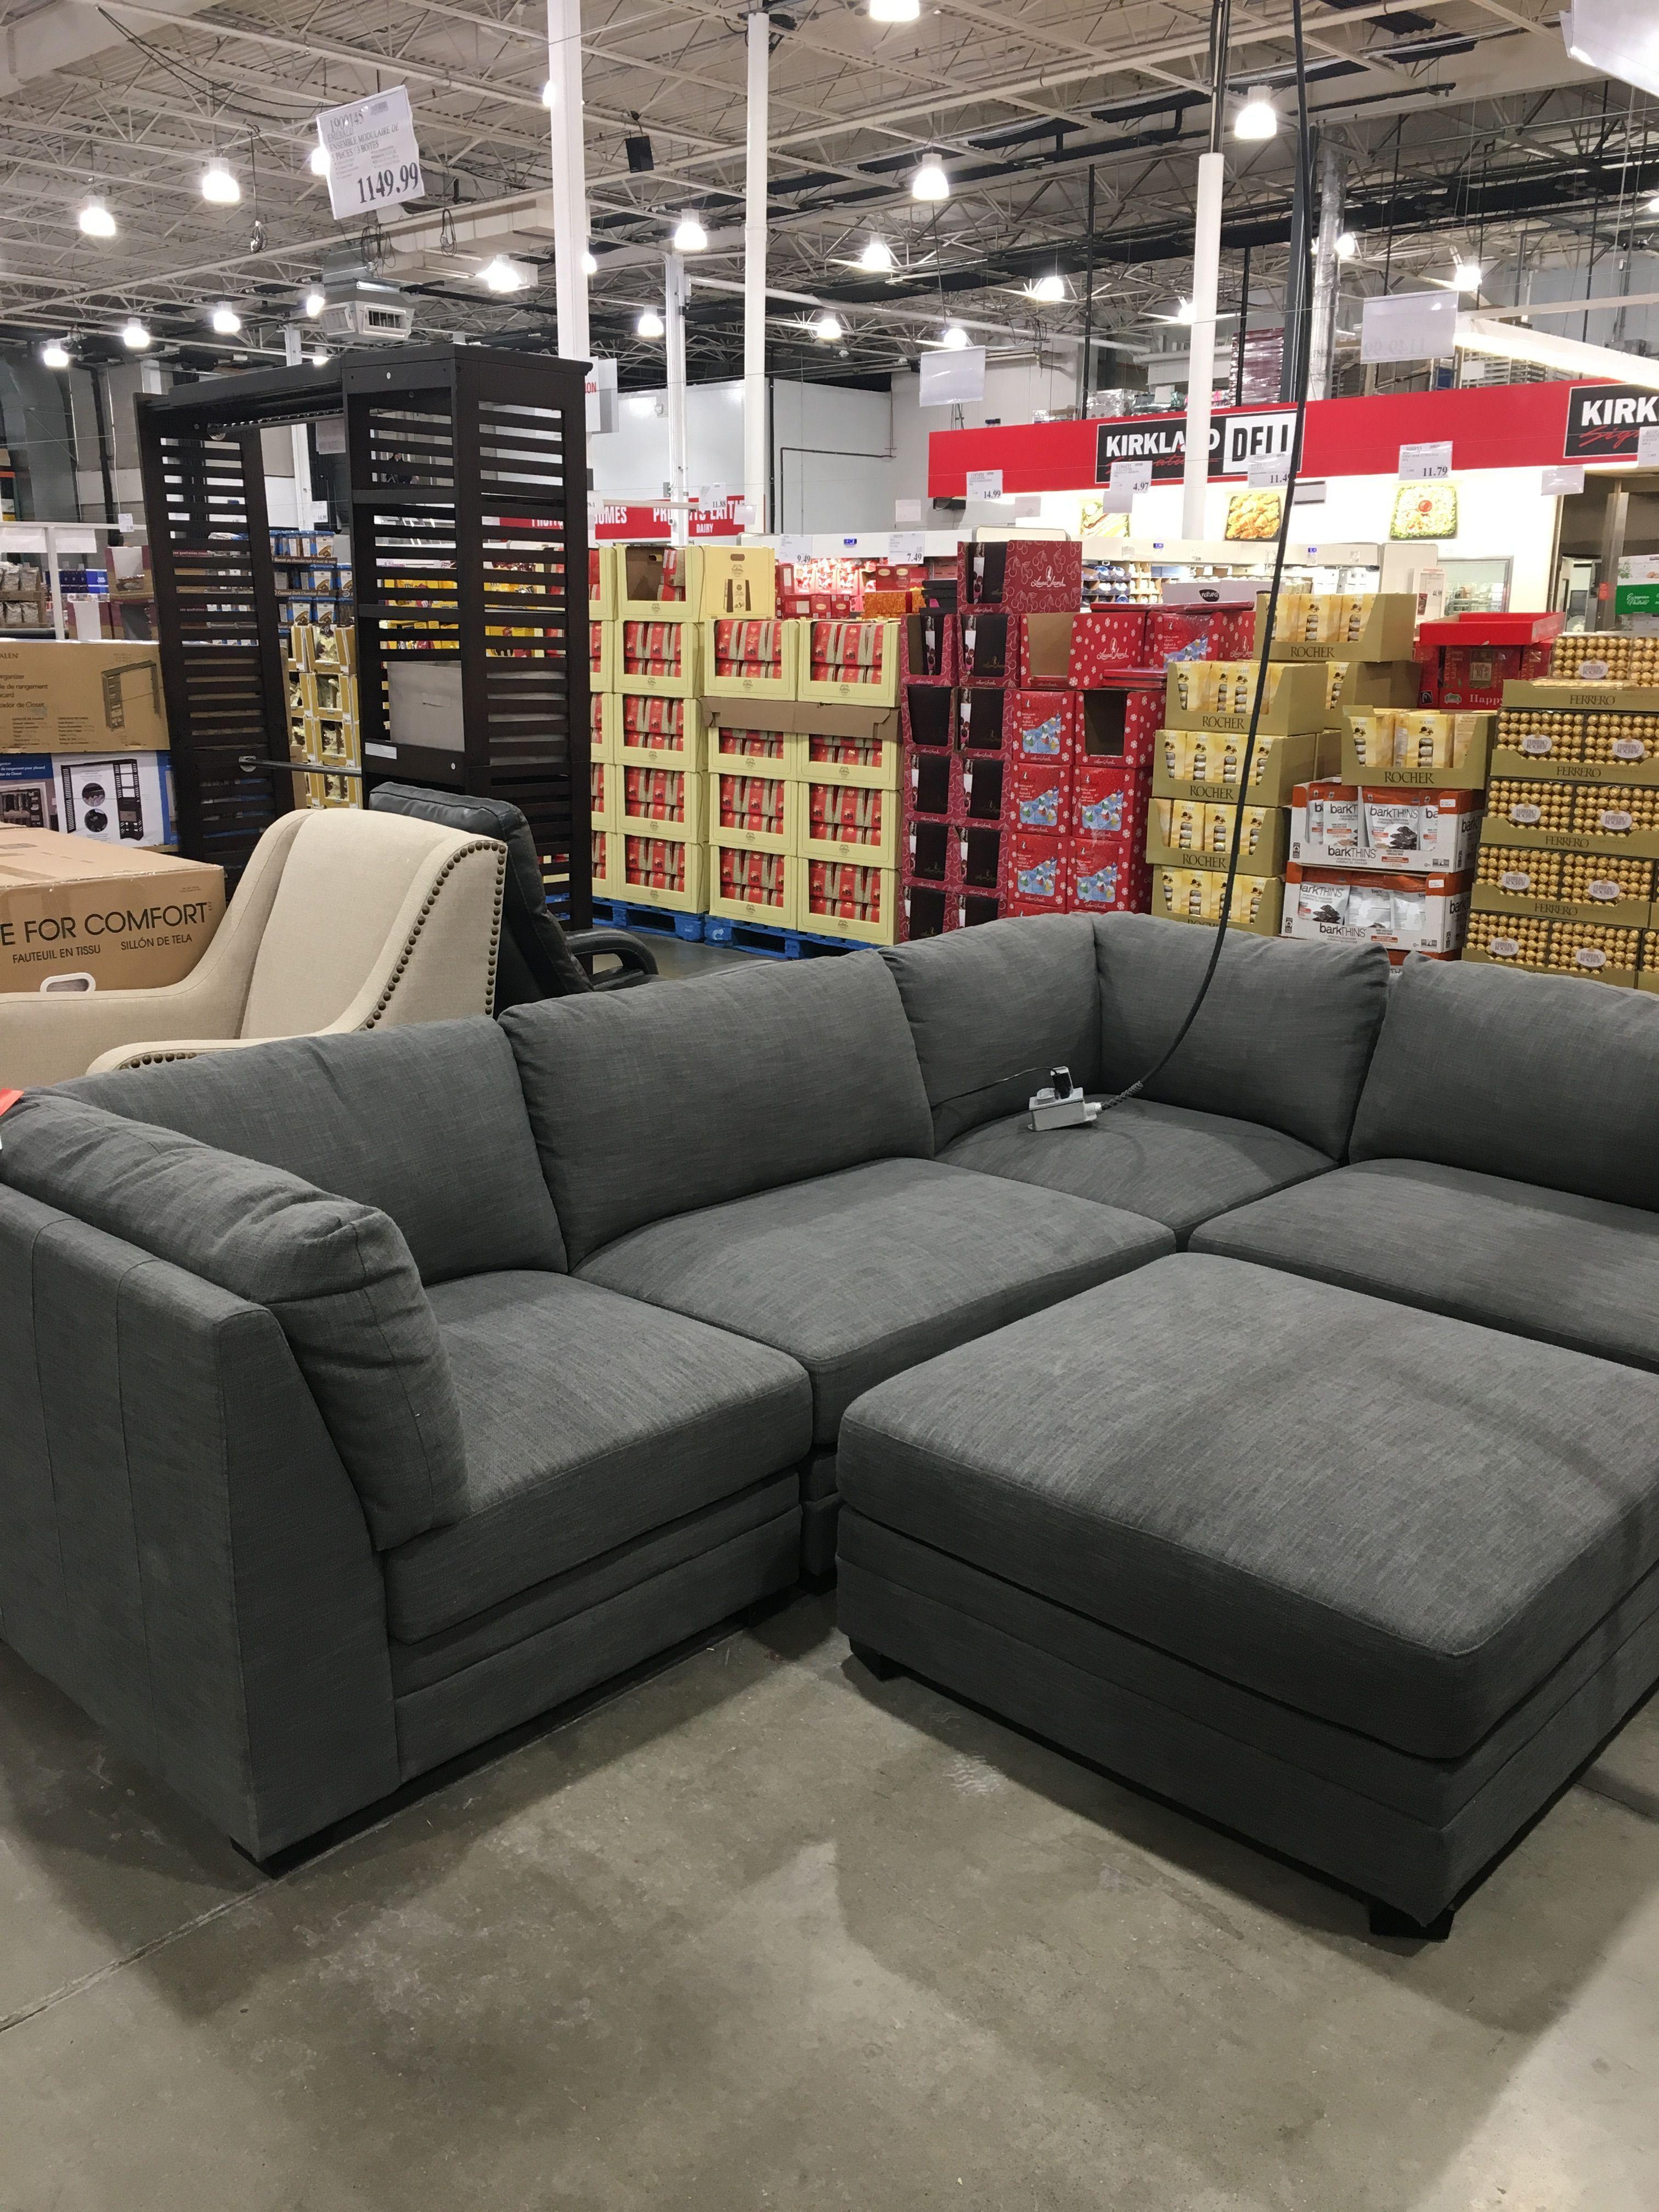 Costco Coffee Table in 2020 Sectional sofa with chaise